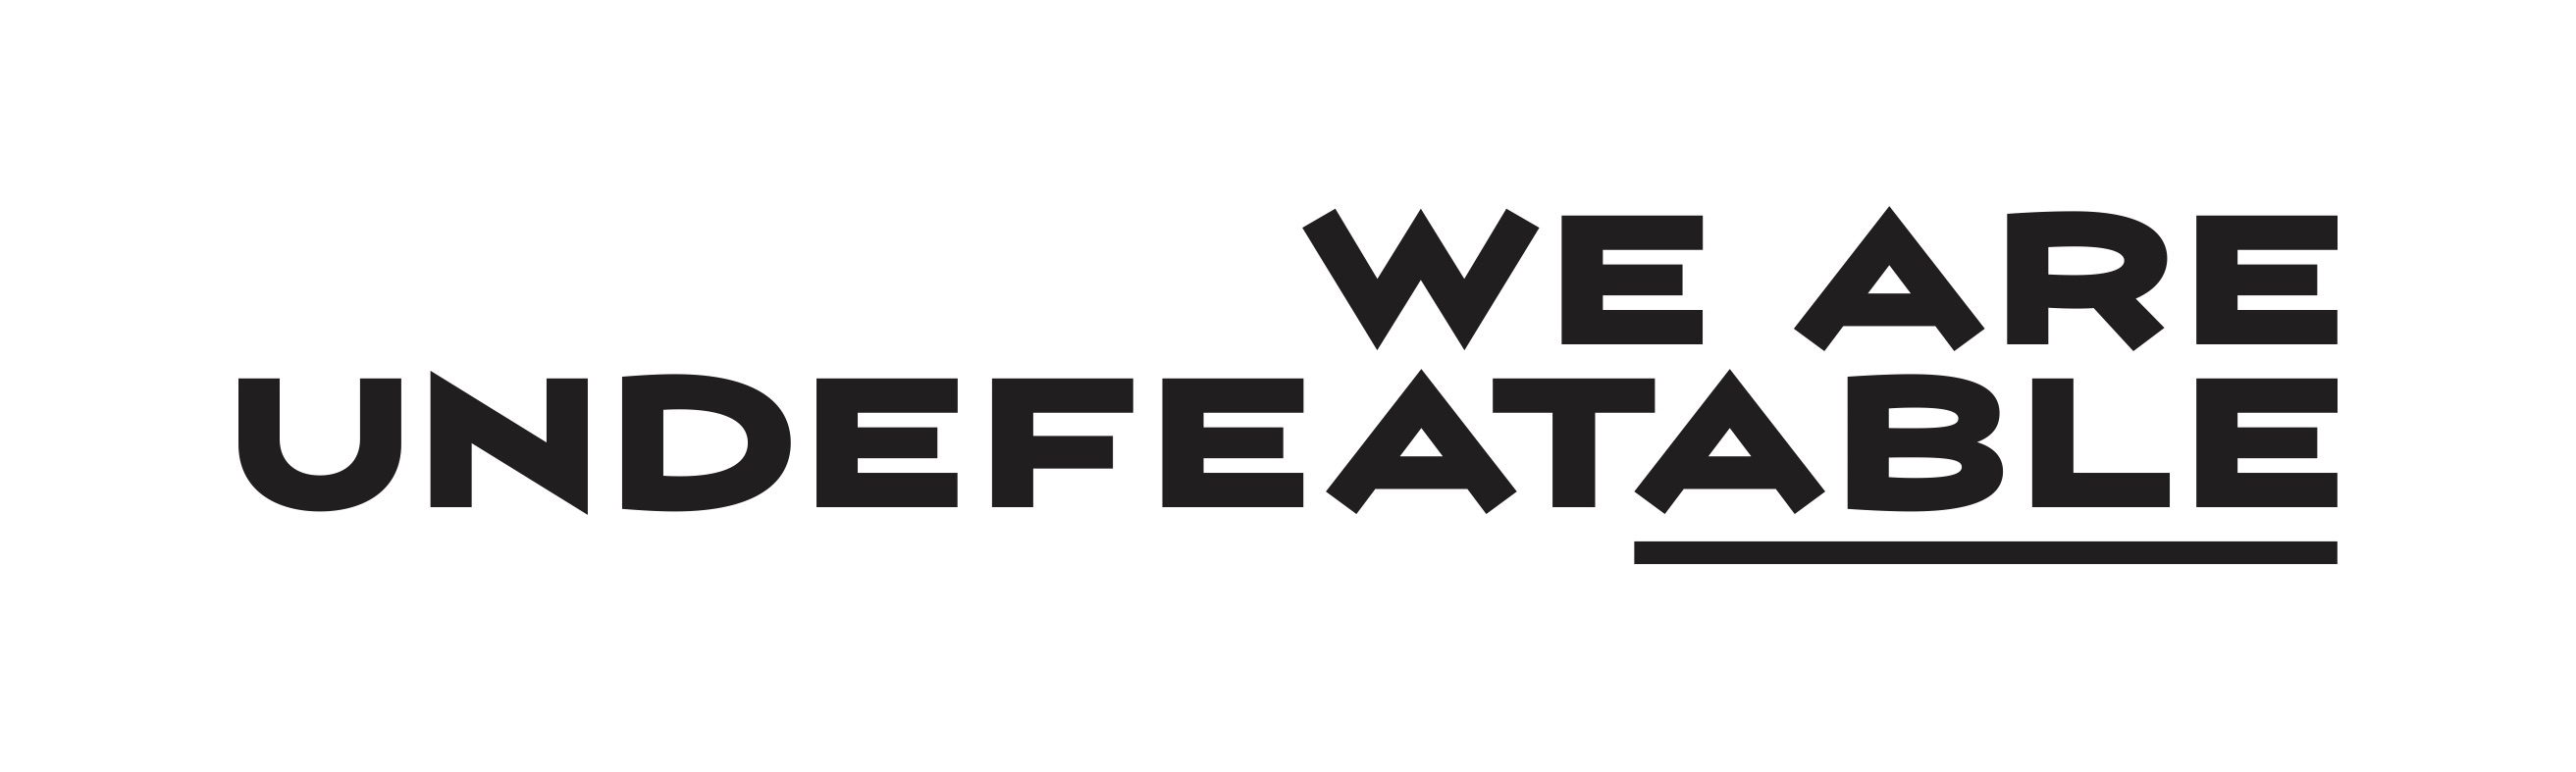 Diabetes UK have partnered with Sport England to take part in the We Are Undefeatable (WAU) campaign to support people with diabetes to exercise